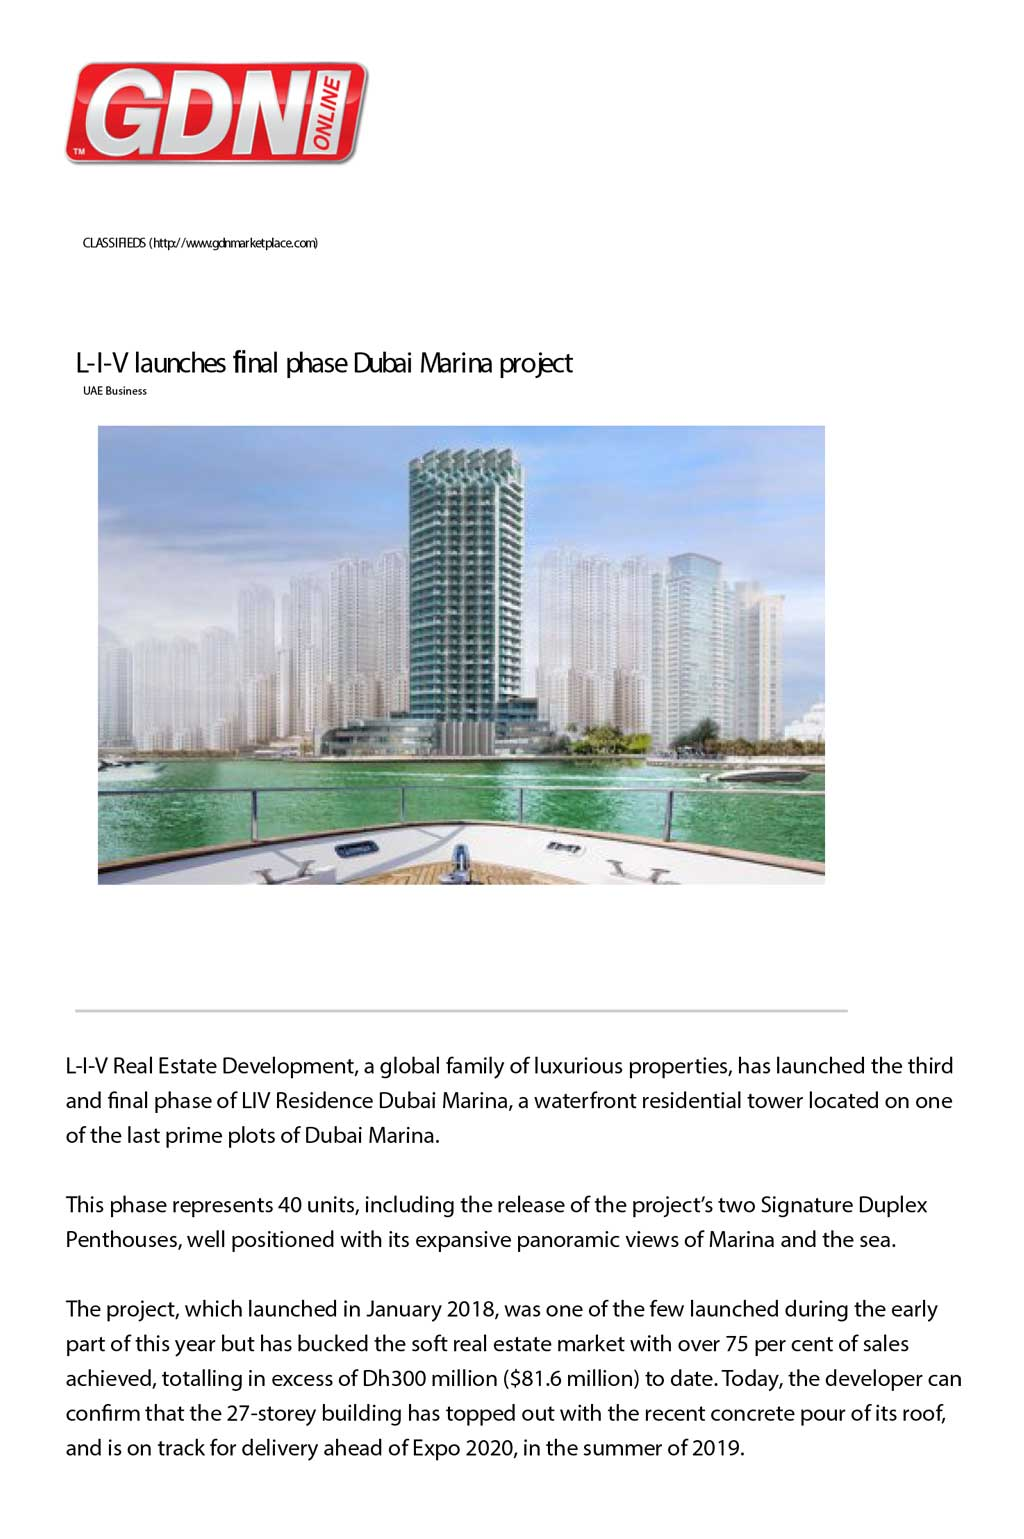 L-I-V launches final phase Dubai Marina project